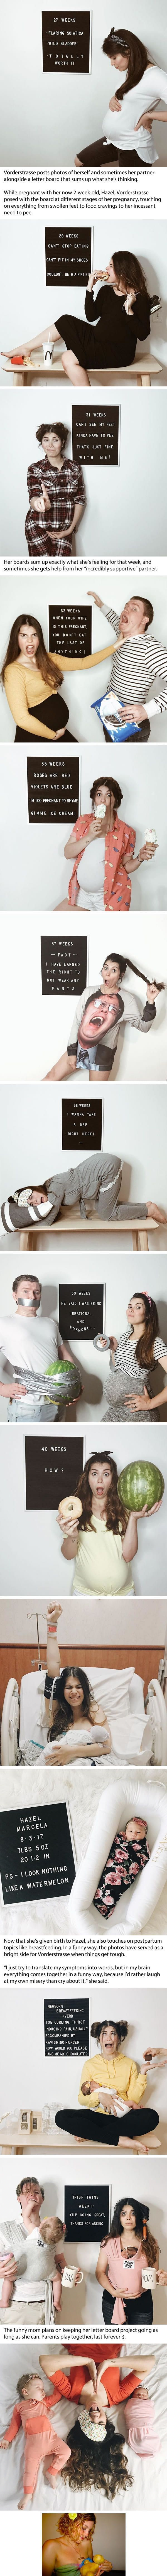 Mother Creates Hilarious Pregnancy Photos With Letter Board Messages #ParentingPhotos #maternityphotos